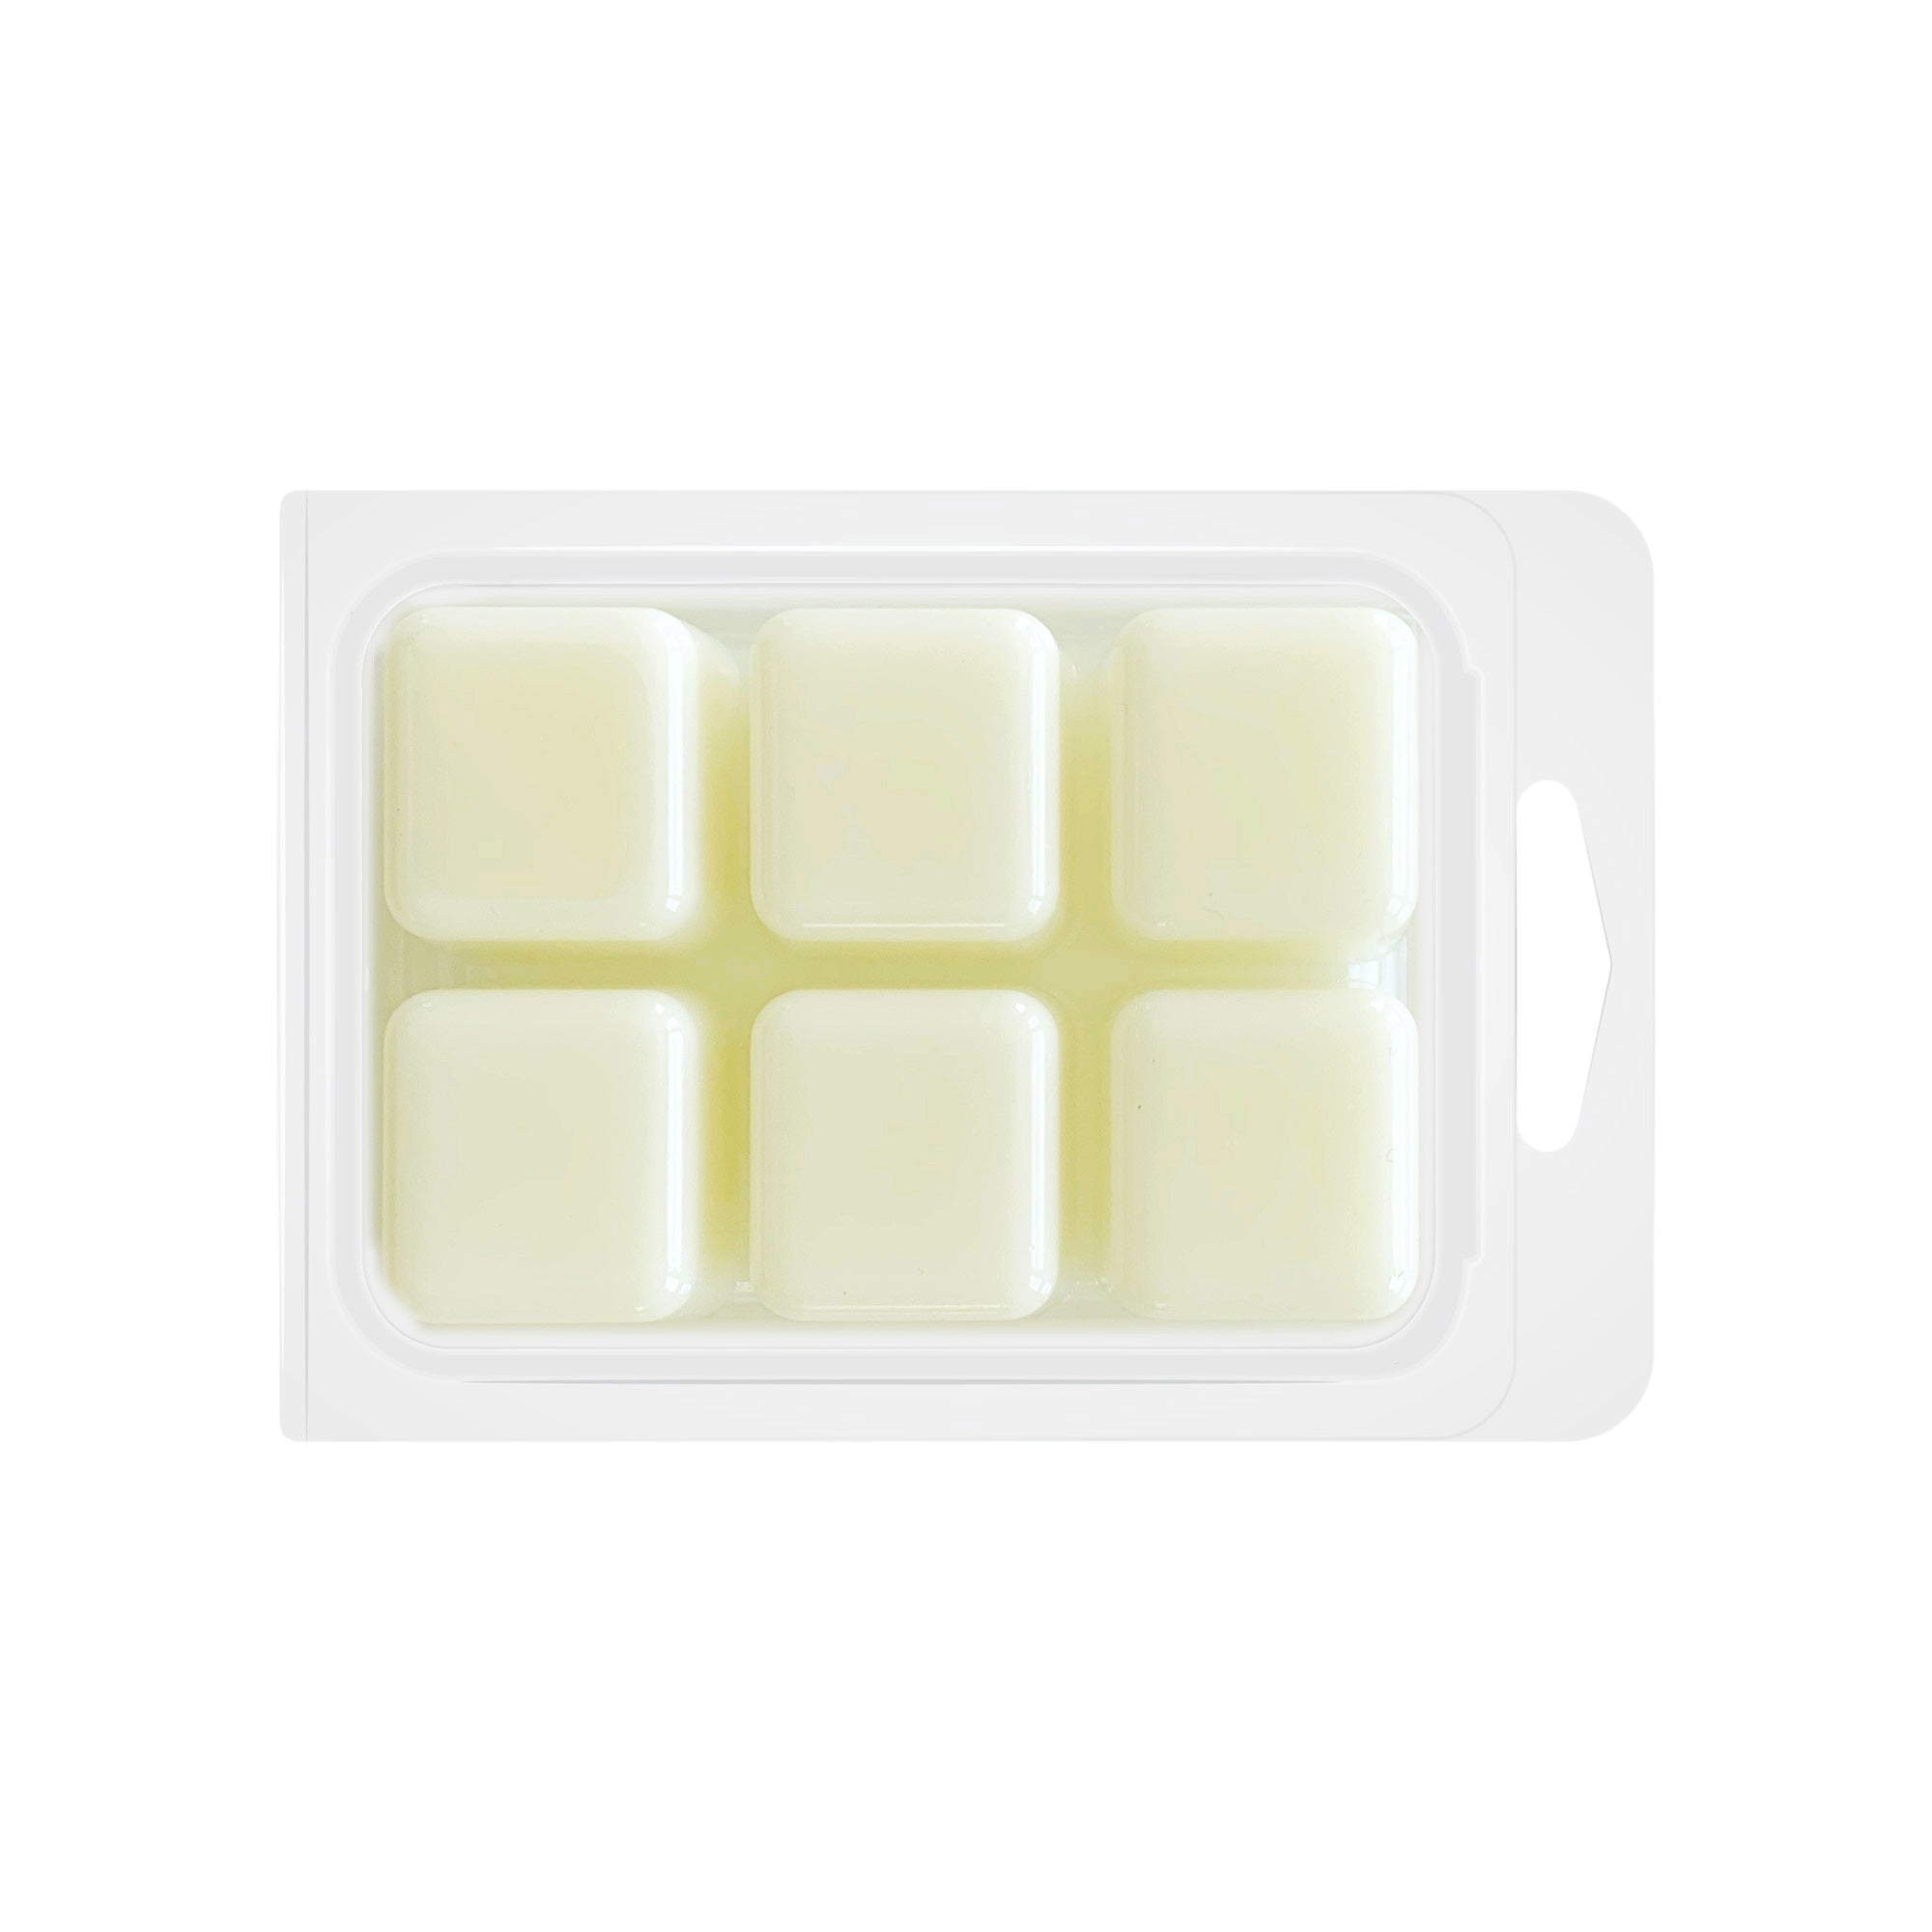 Bonita, Bonita, Bonita Wax Melts